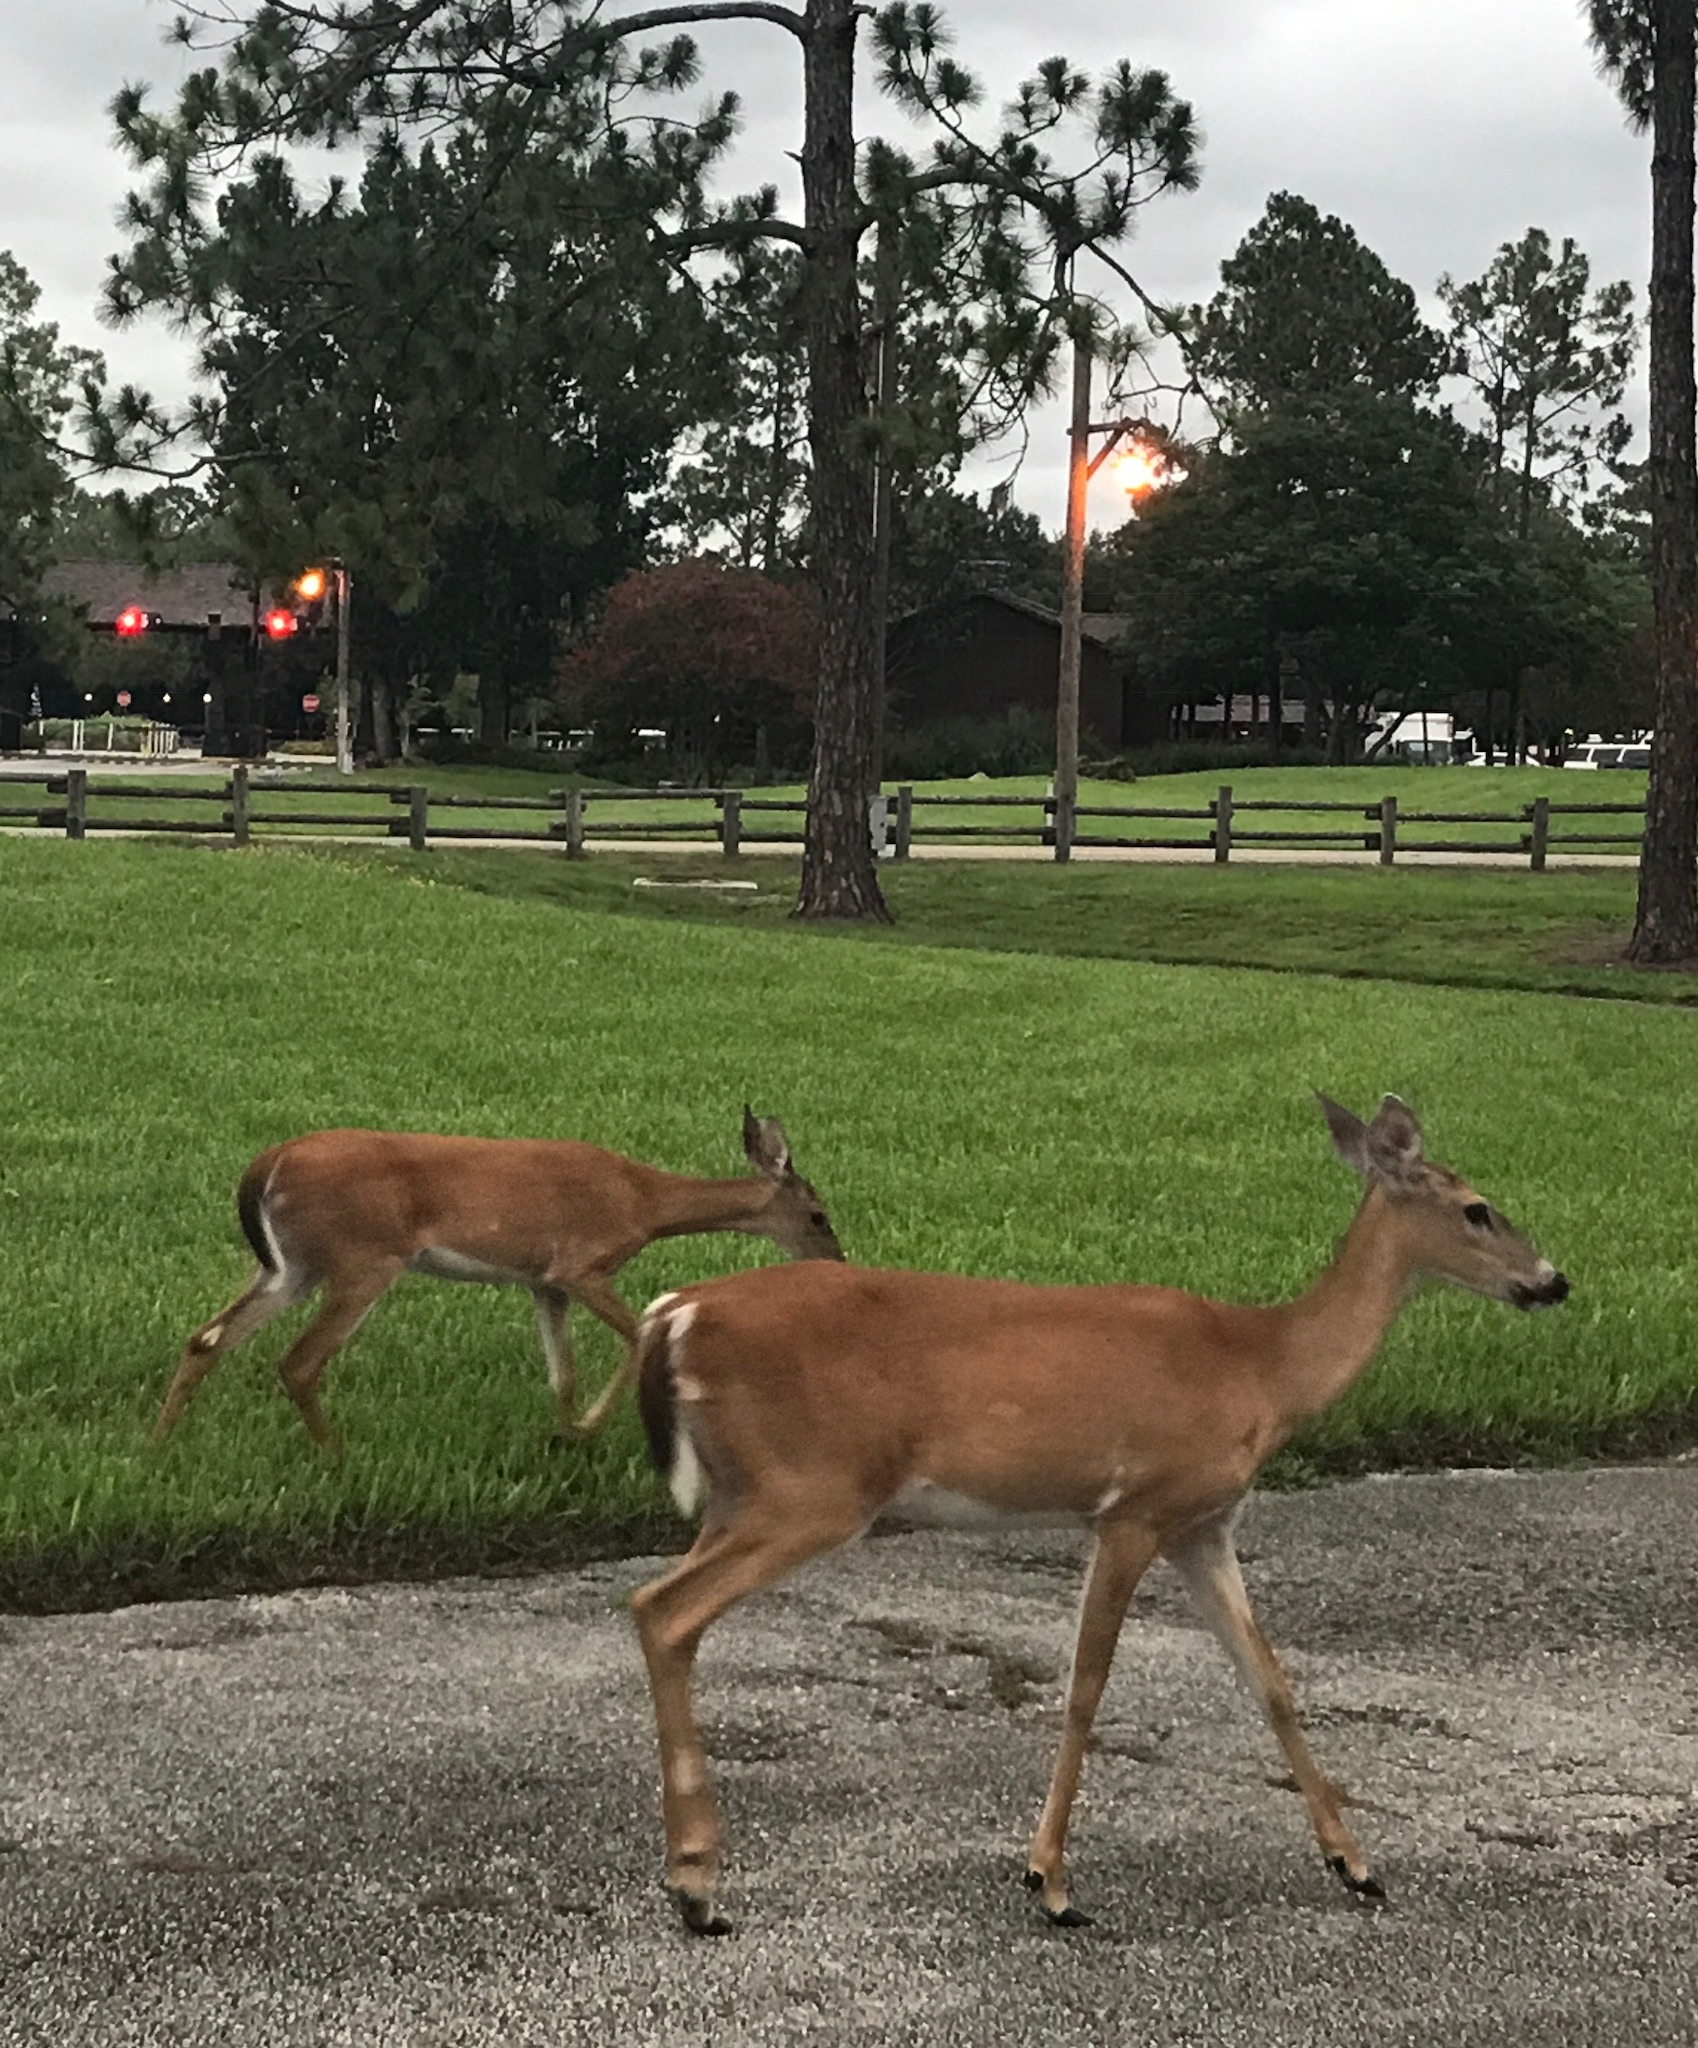 Deer Disney moderate resorts